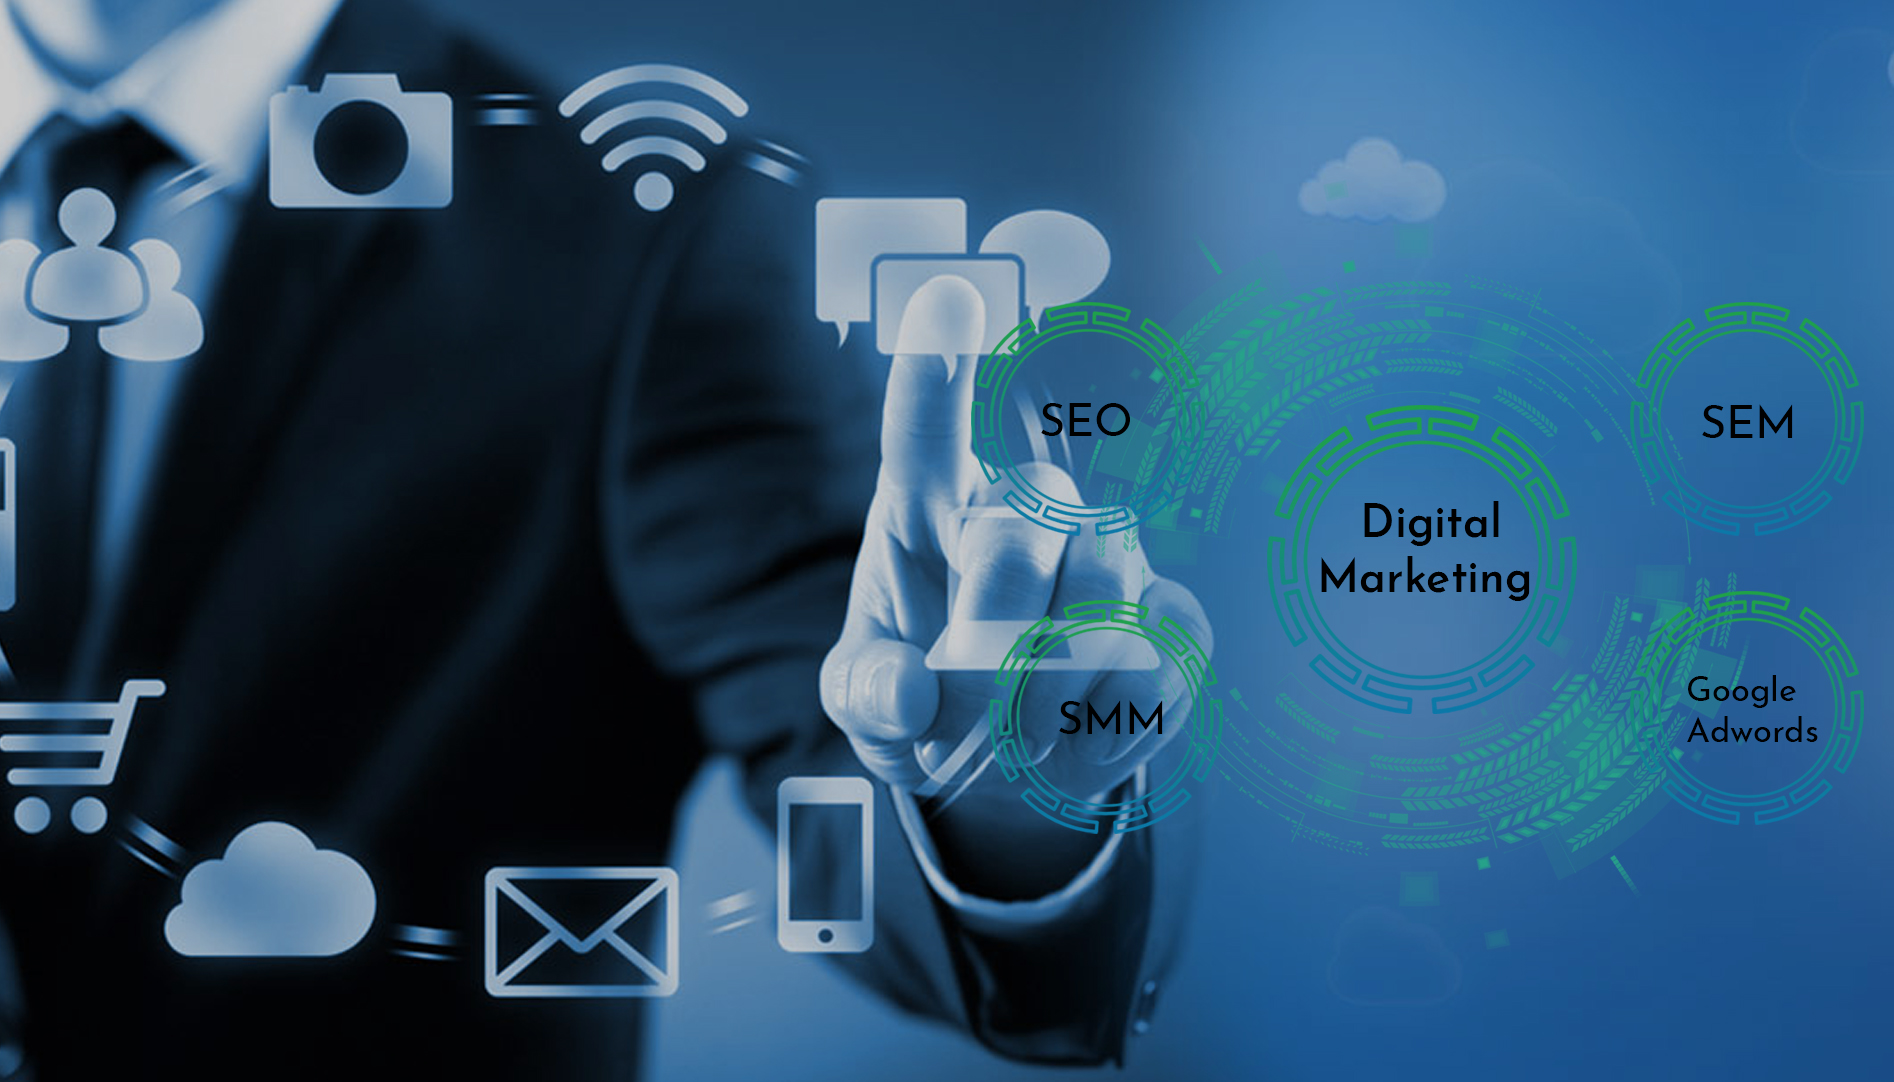 Digital Marketing Companies in Chennai